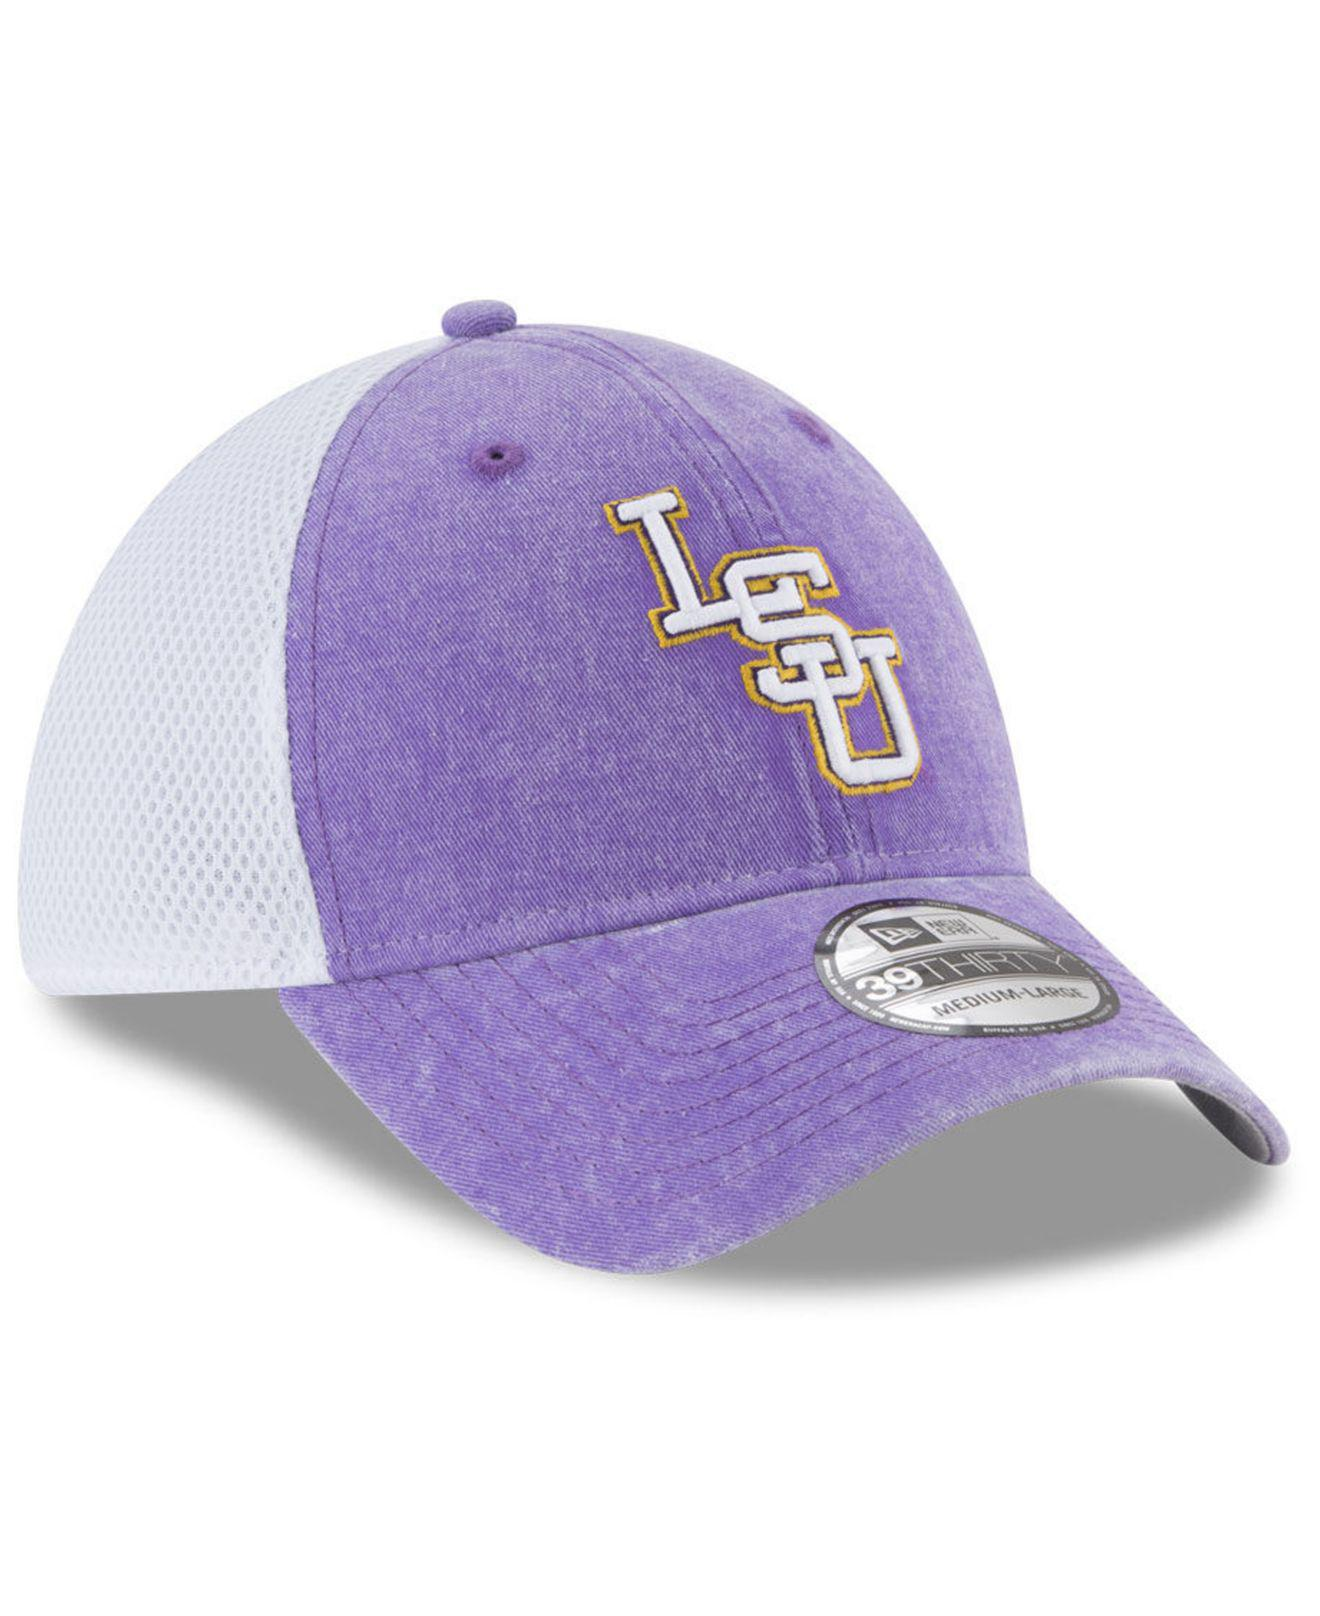 best loved 9426f 0c269 ... aliexpress lyst ktz lsu tigers washed neo 39thirty cap in purple for men  6d447 921f1